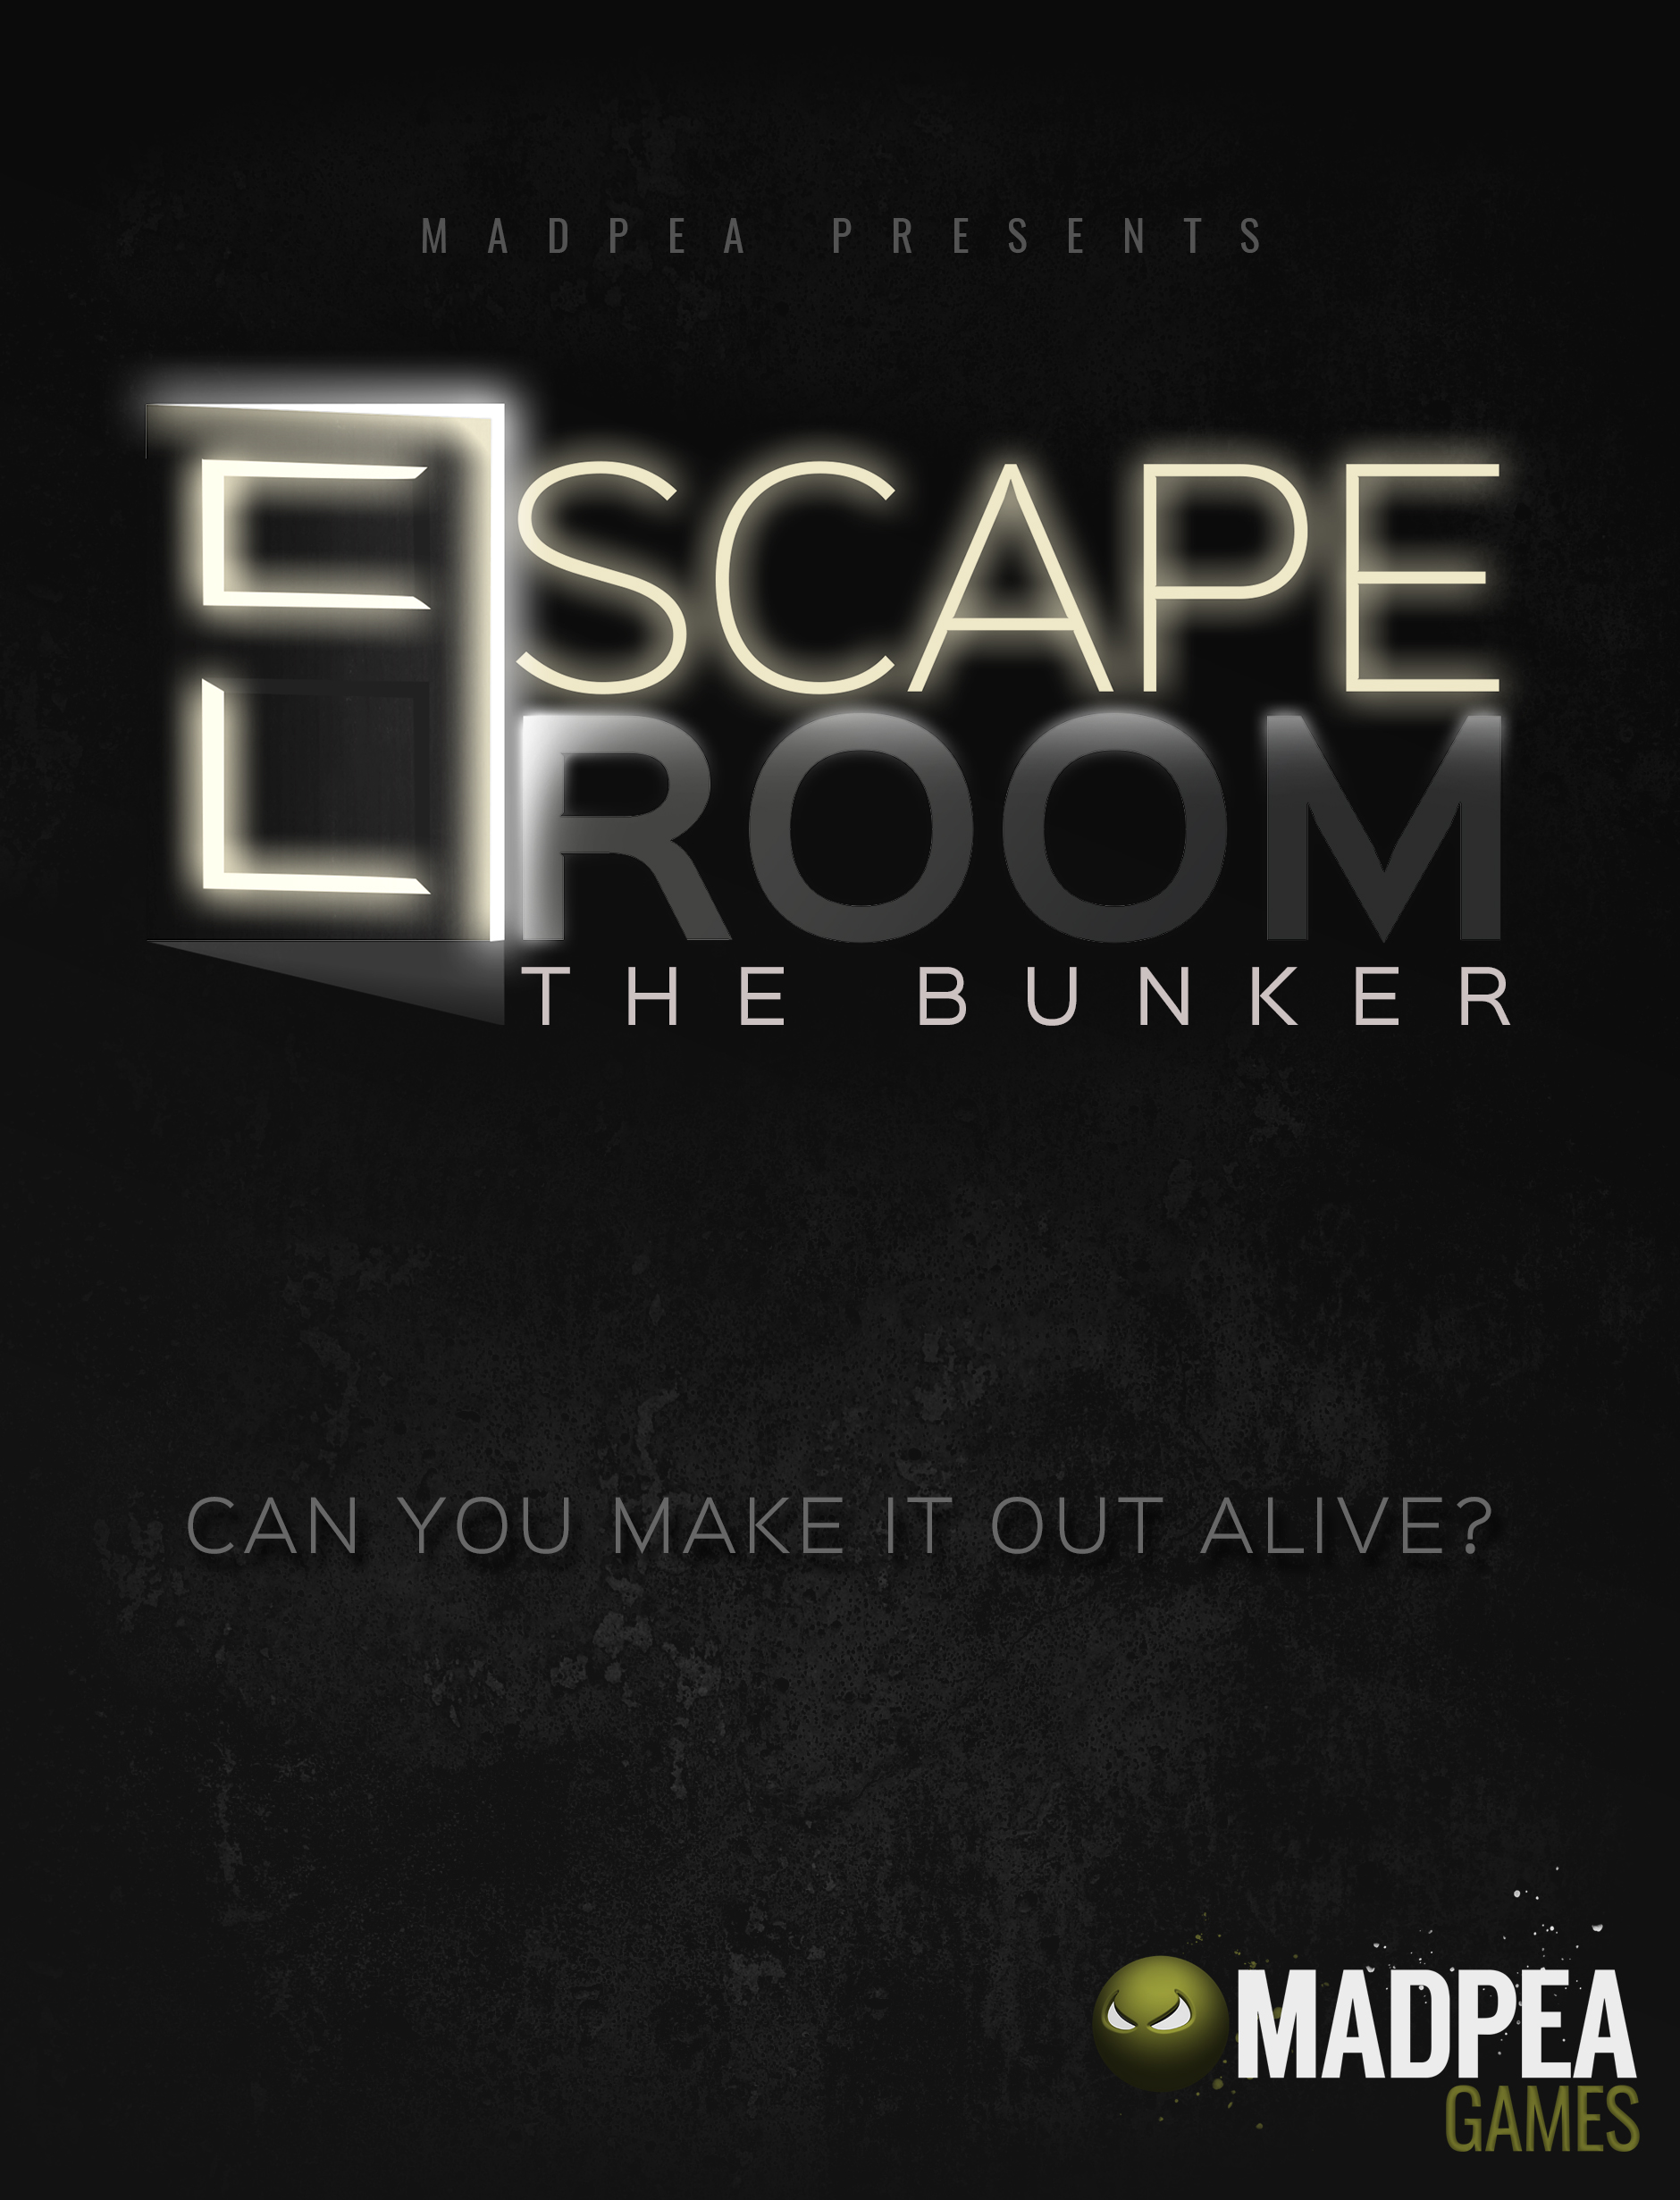 A MadPea favorite returns! Escape Room!